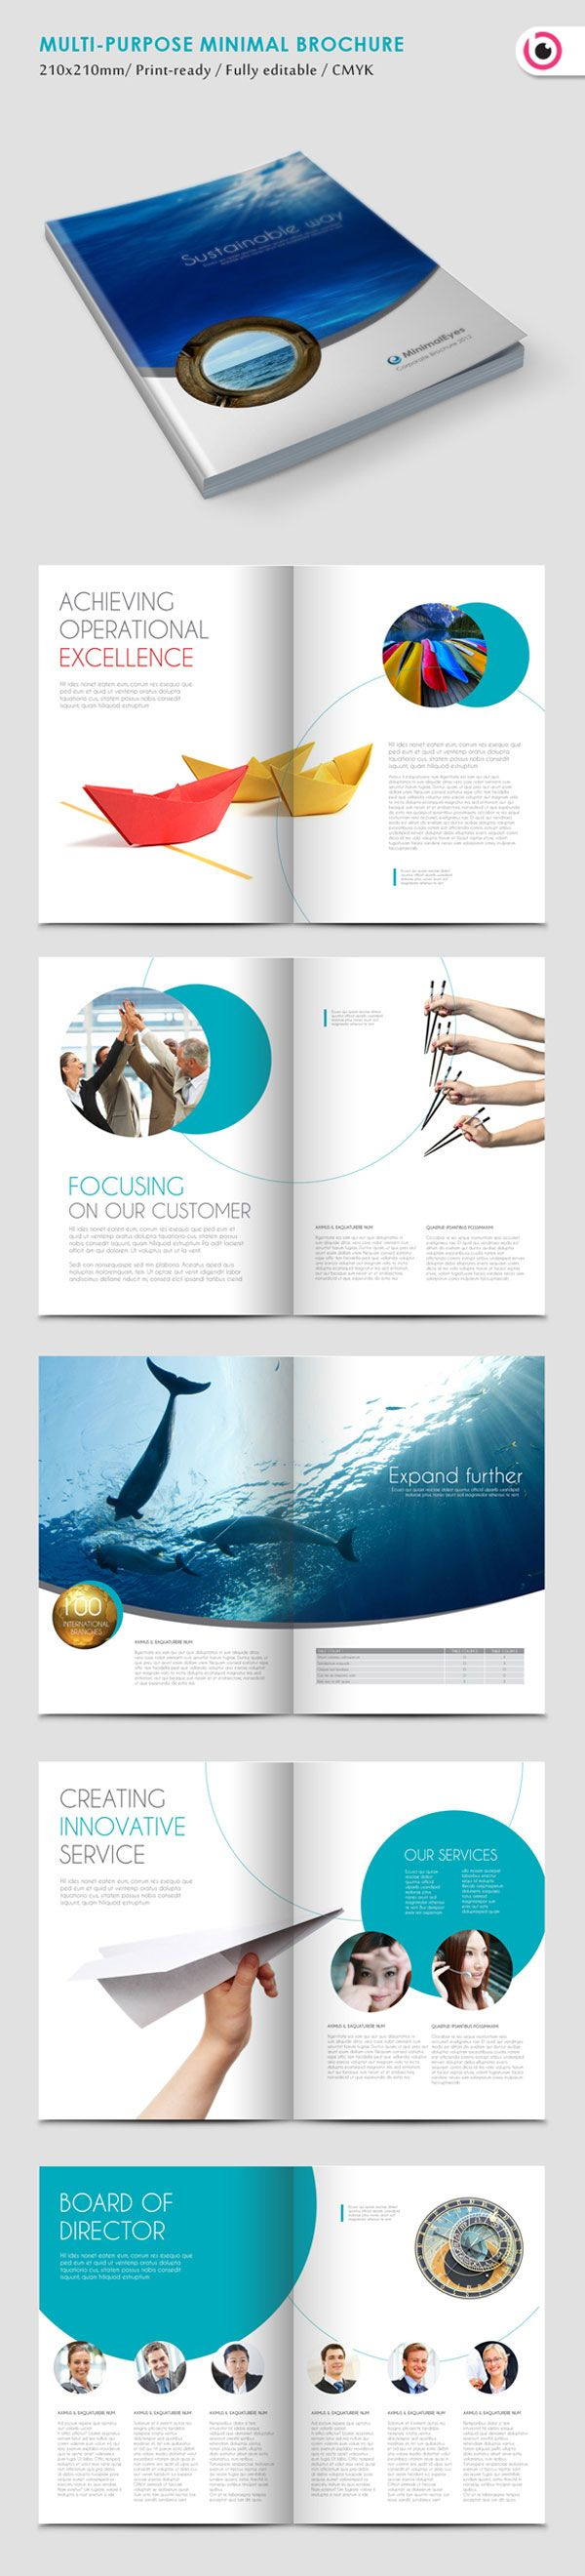 minimal-brochure-design-template